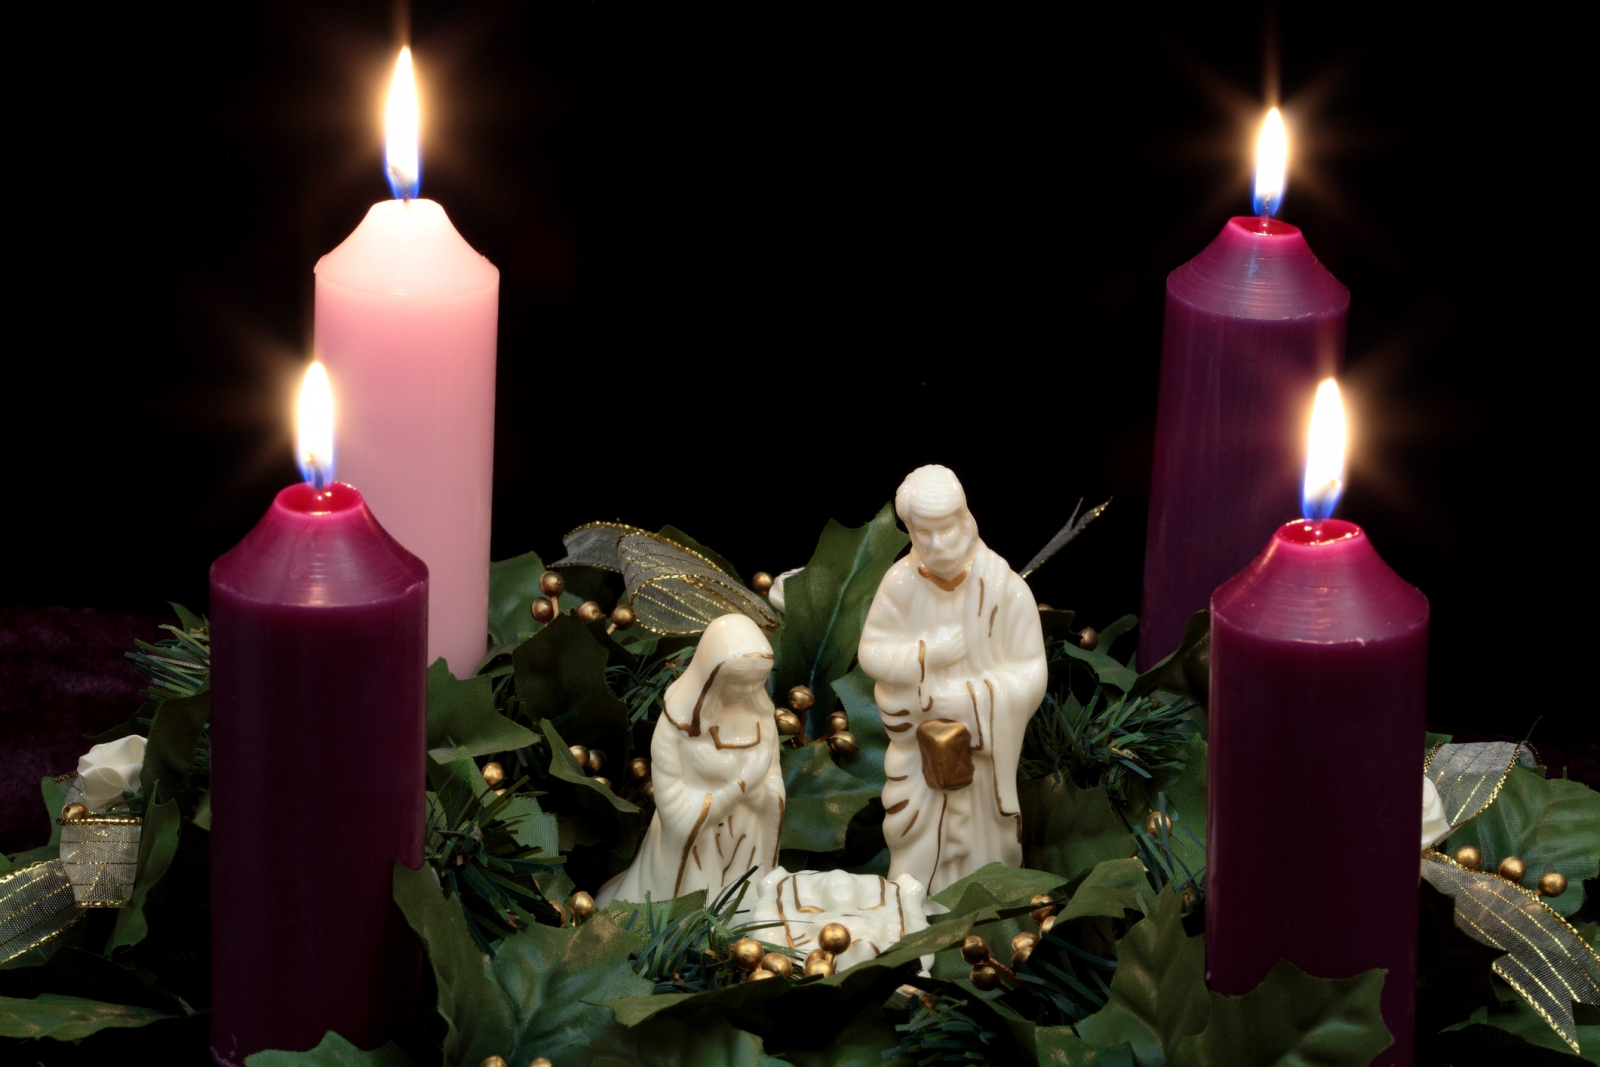 Advent wreath and nativity figures